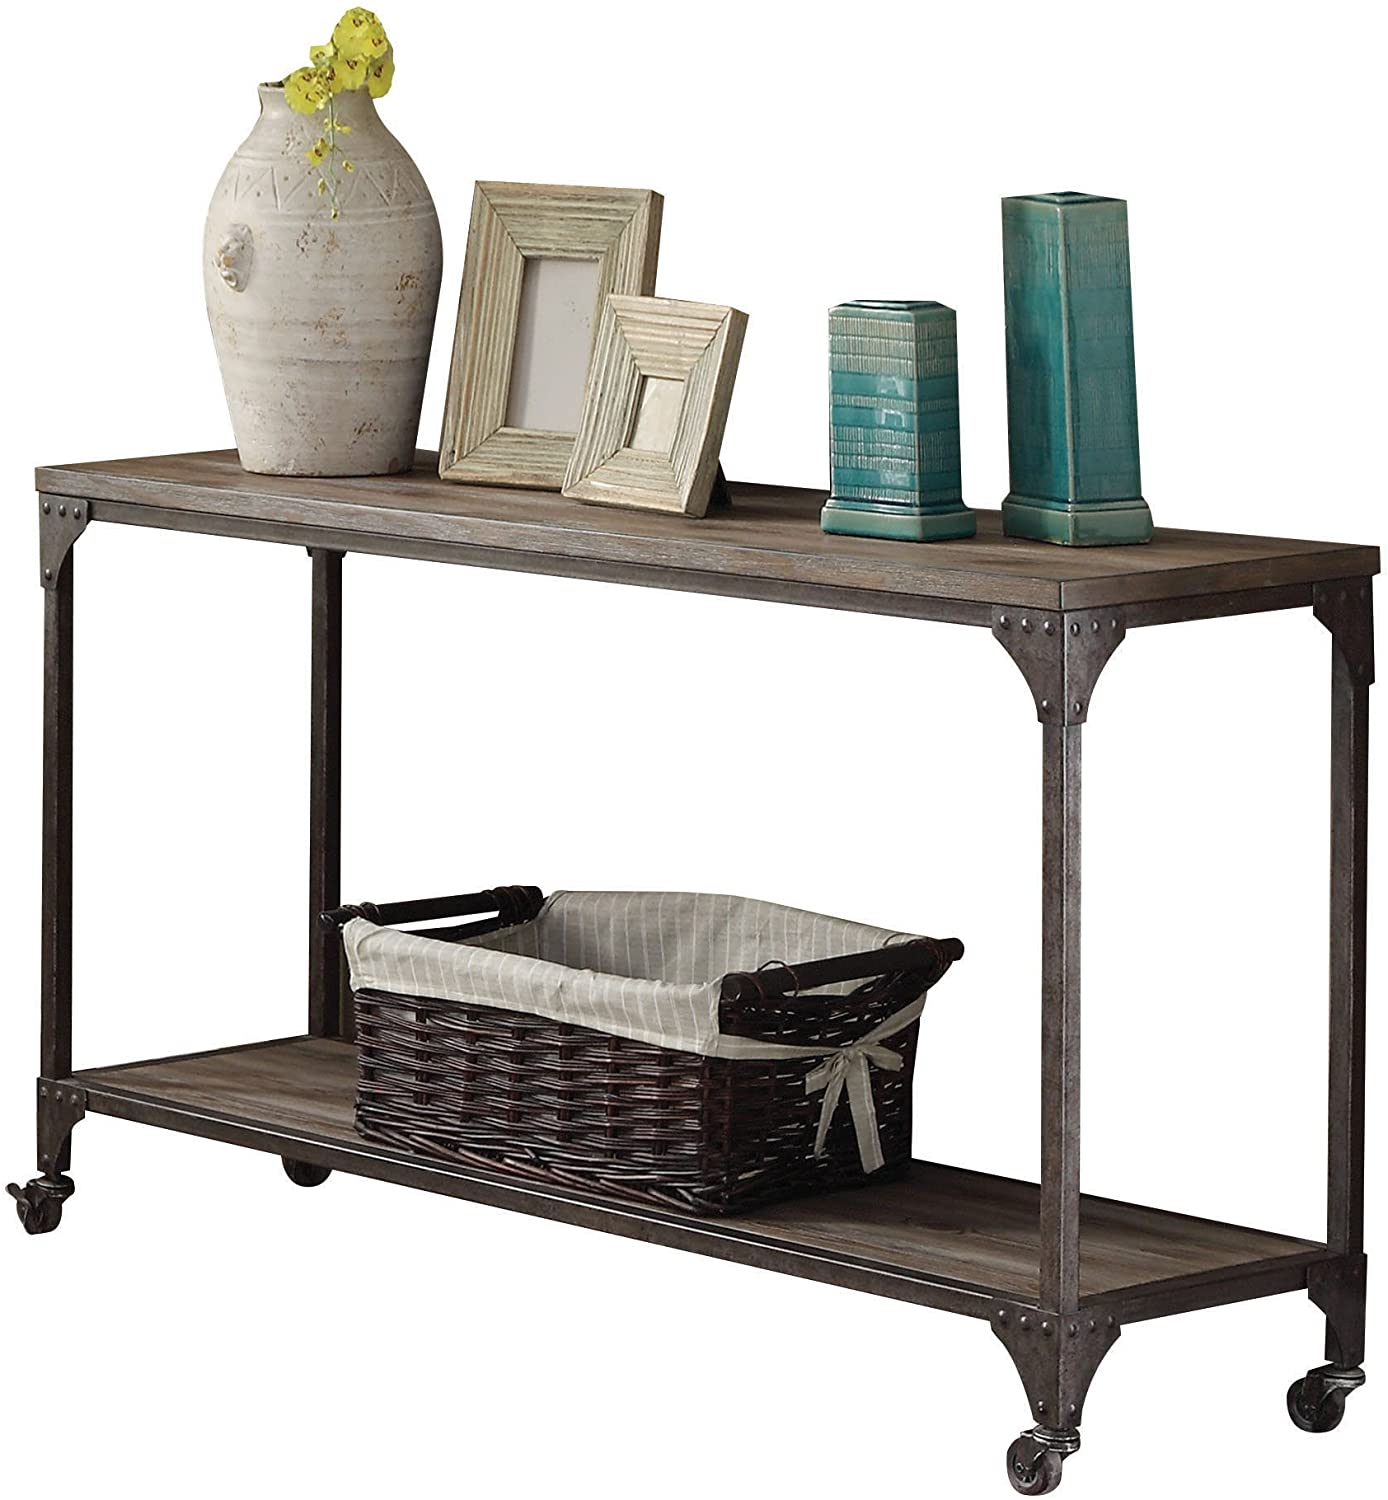 Sofa Table With Wheels And Open Shelf Weathered Oak And Antique Nickel Walmart Com Walmart Com